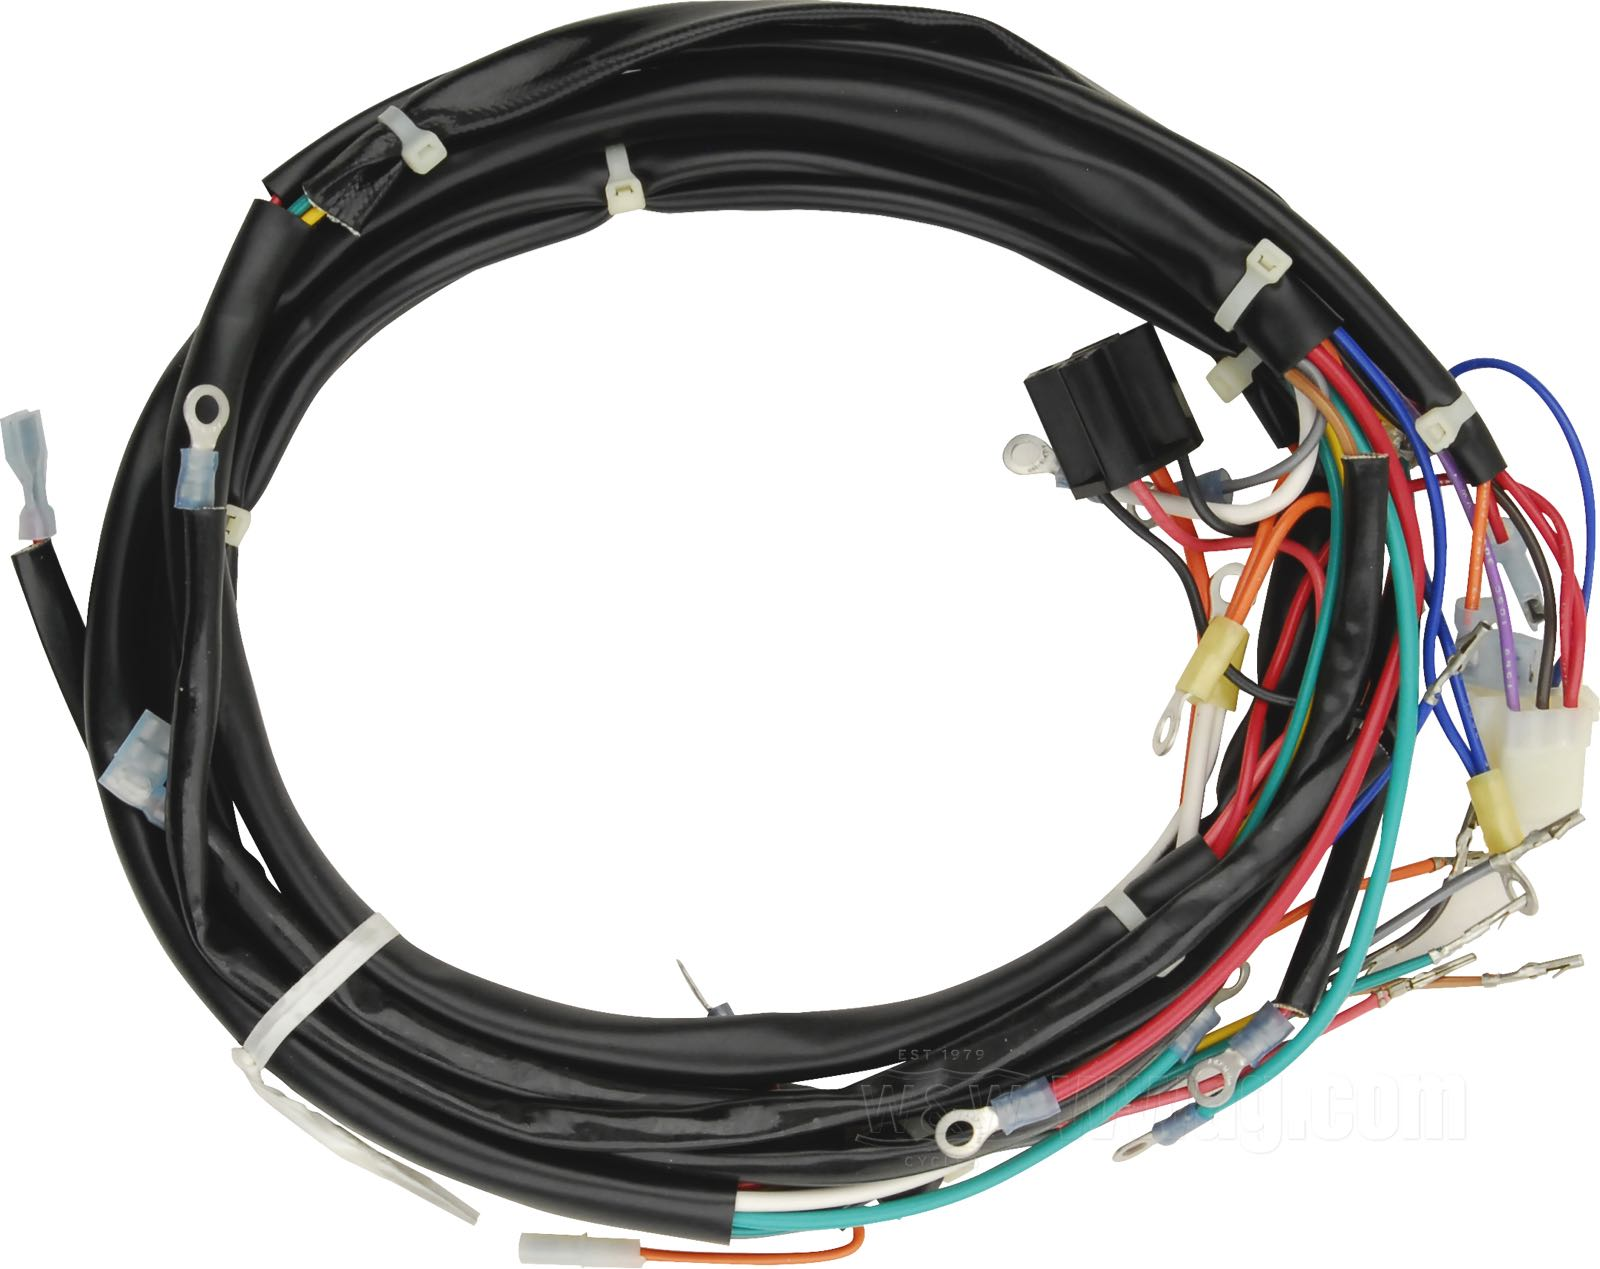 W&W Cycles - Main Wiring Harness Kits - for FXR Models | 1990 Fxr Wiring Harness |  | W&W Cycles